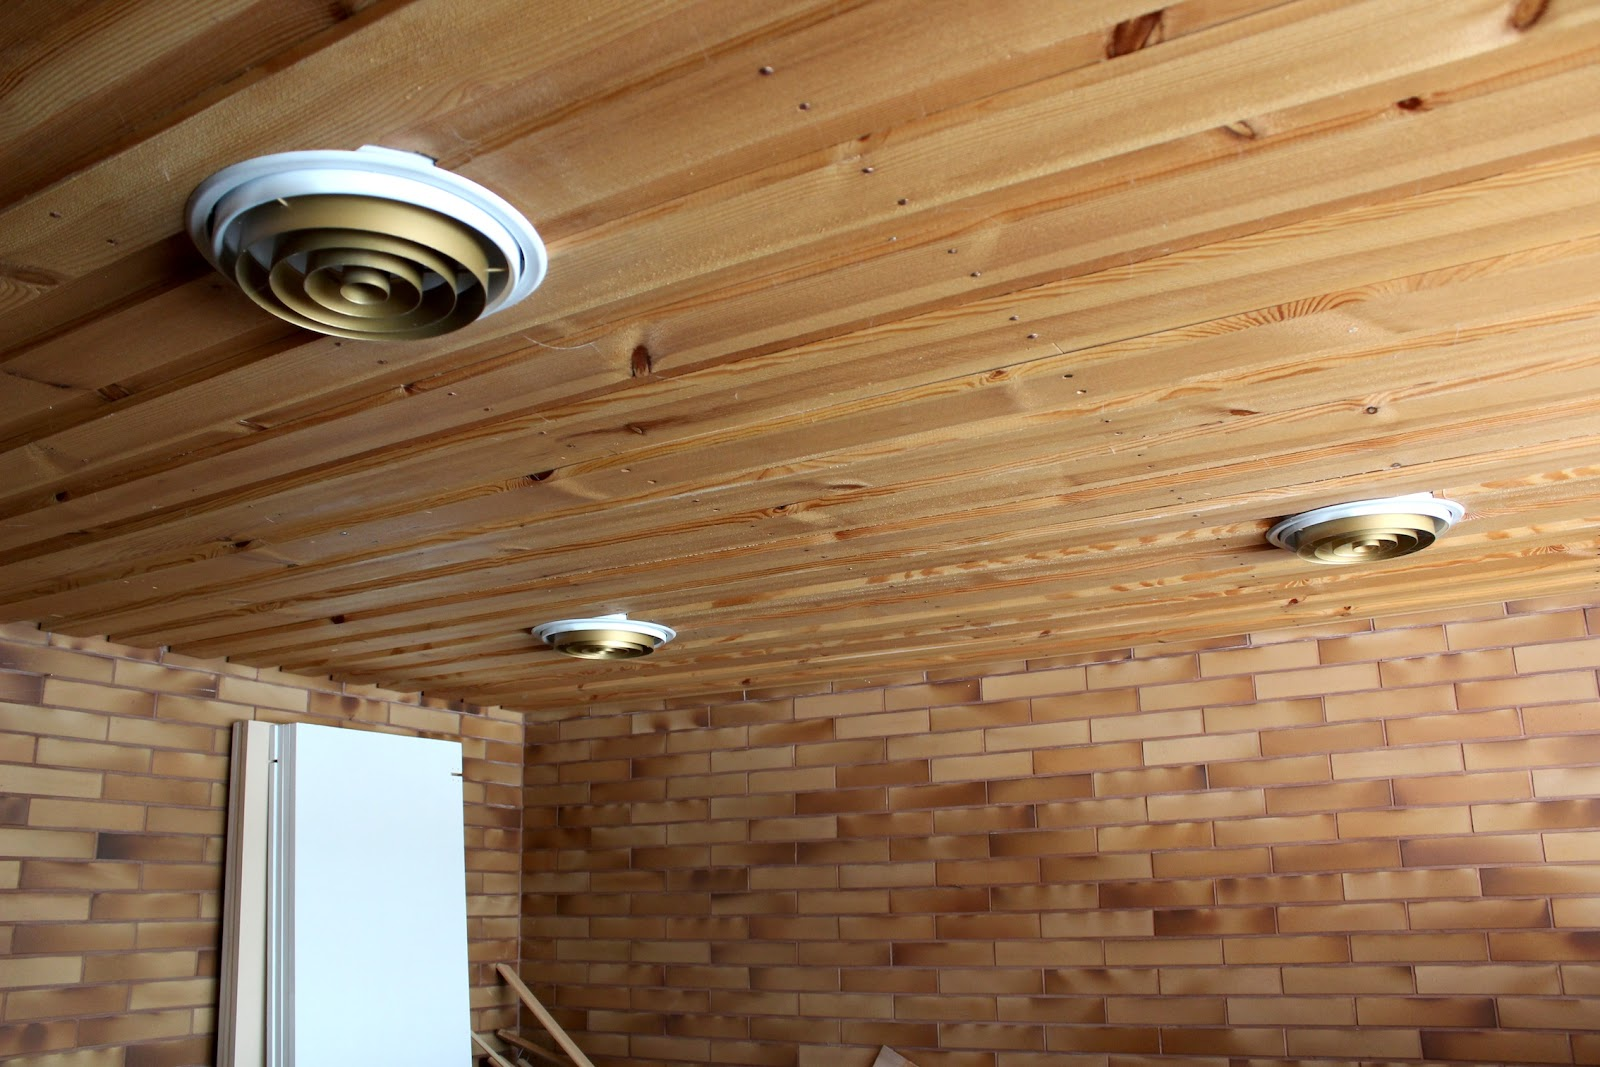 suspended ceiling downstairs